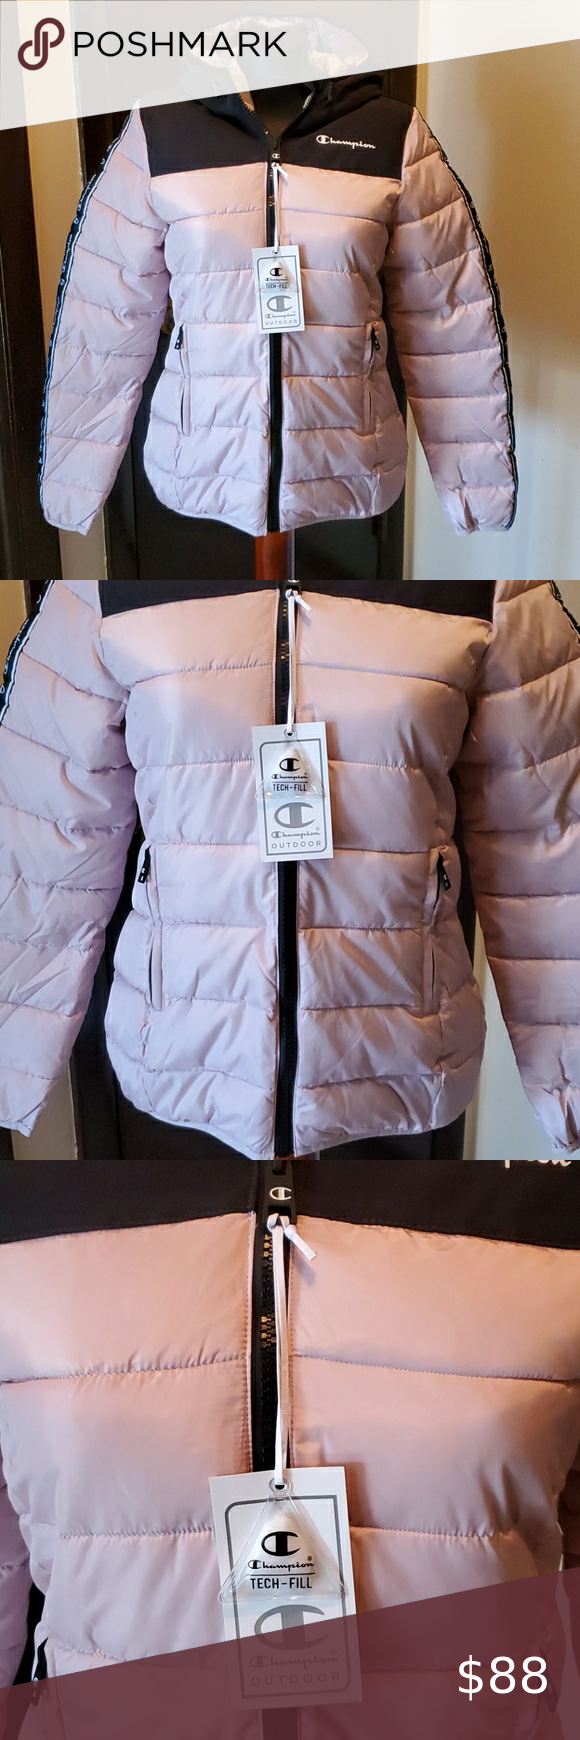 Women Champion Outdoor Tech Fill Puffer Jacket Superior Quality Superior Look Trendy Champion Outdoor P Women S Puffer Puffer Jacket Women Silver Puffer Jacket [ 1740 x 580 Pixel ]